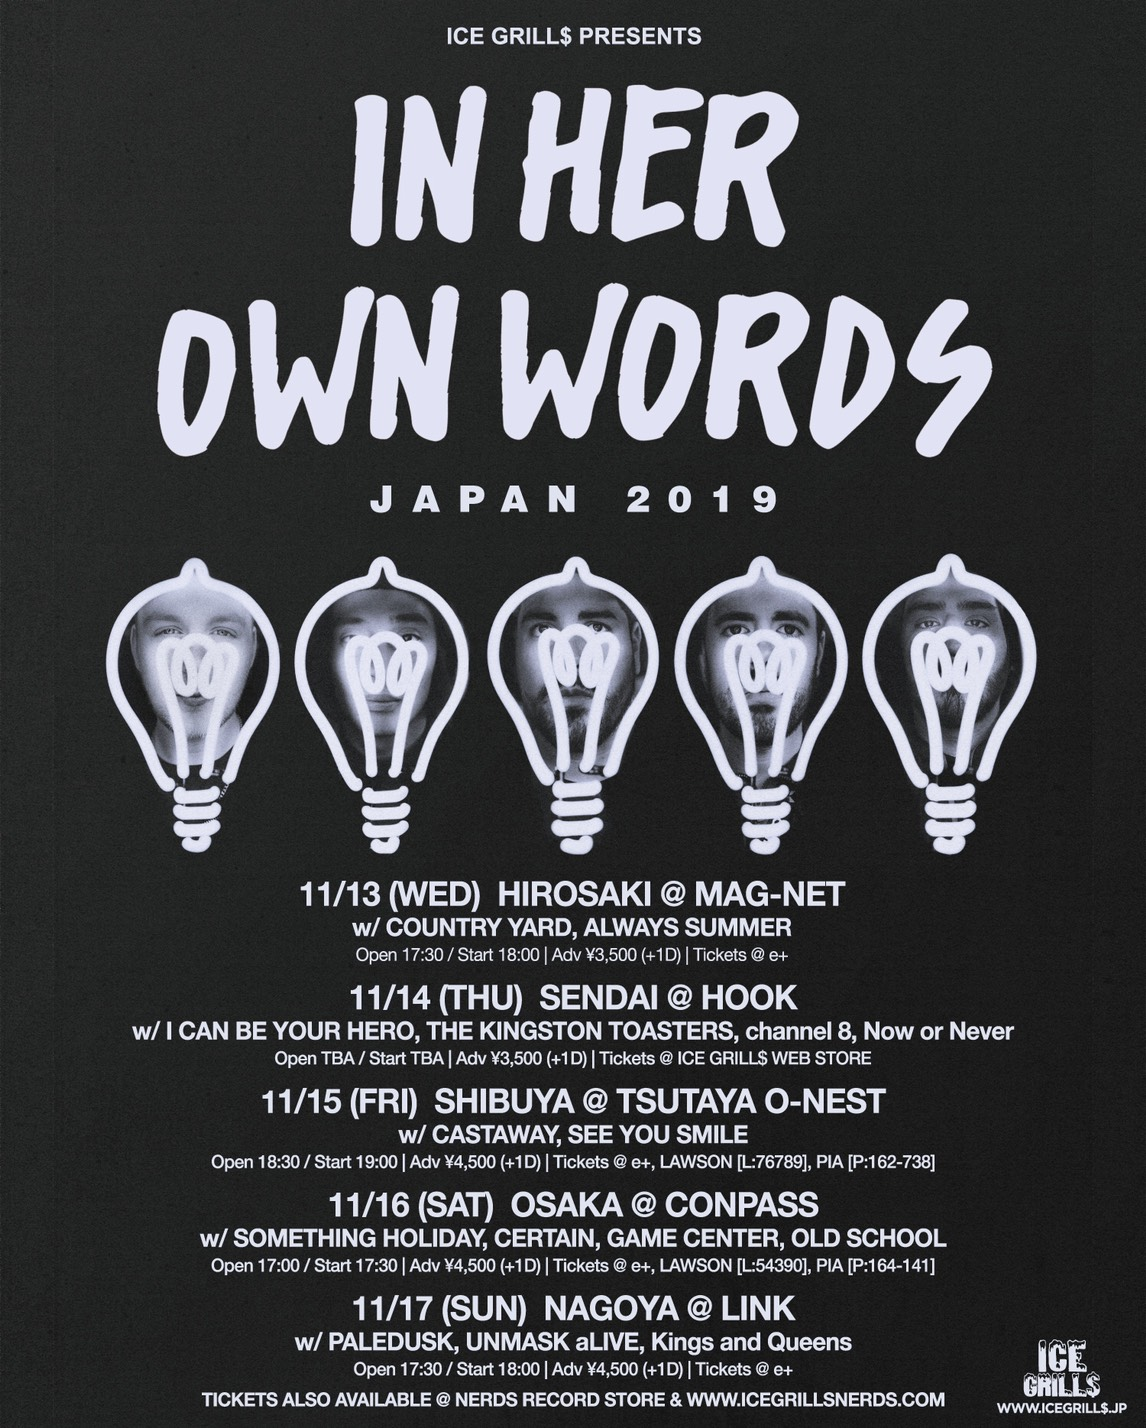 ICE GRILLS pre. IN HER OWN WORDS japan tour 2019